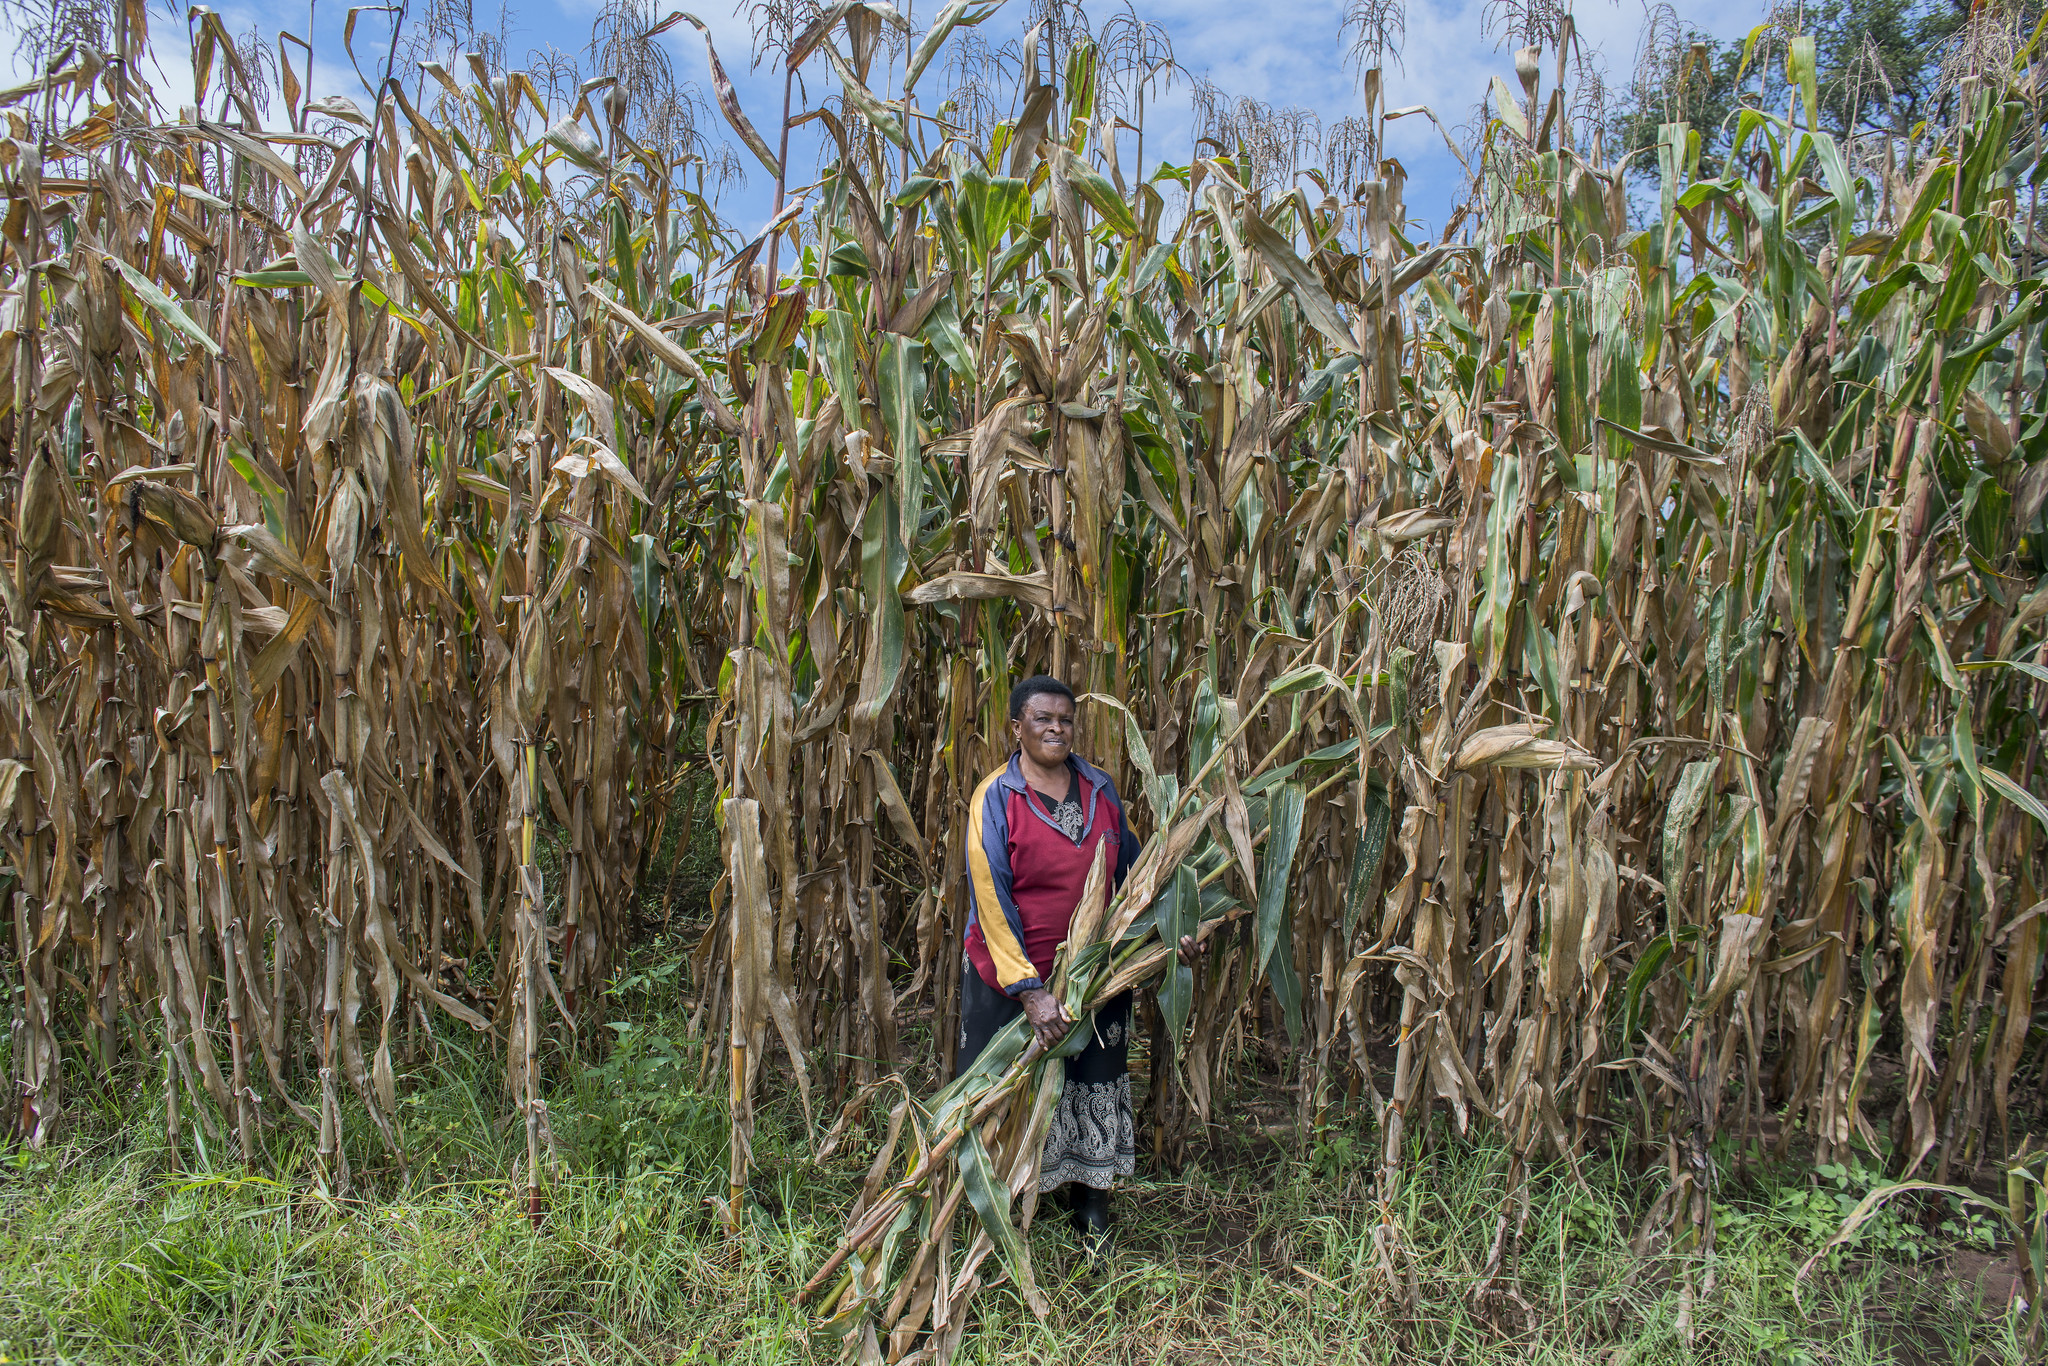 Florence Ochieng harvests green maize on her 105-acre family farm near Kitale, Kenya. (Photo: P. Lowe/CIMMYT)